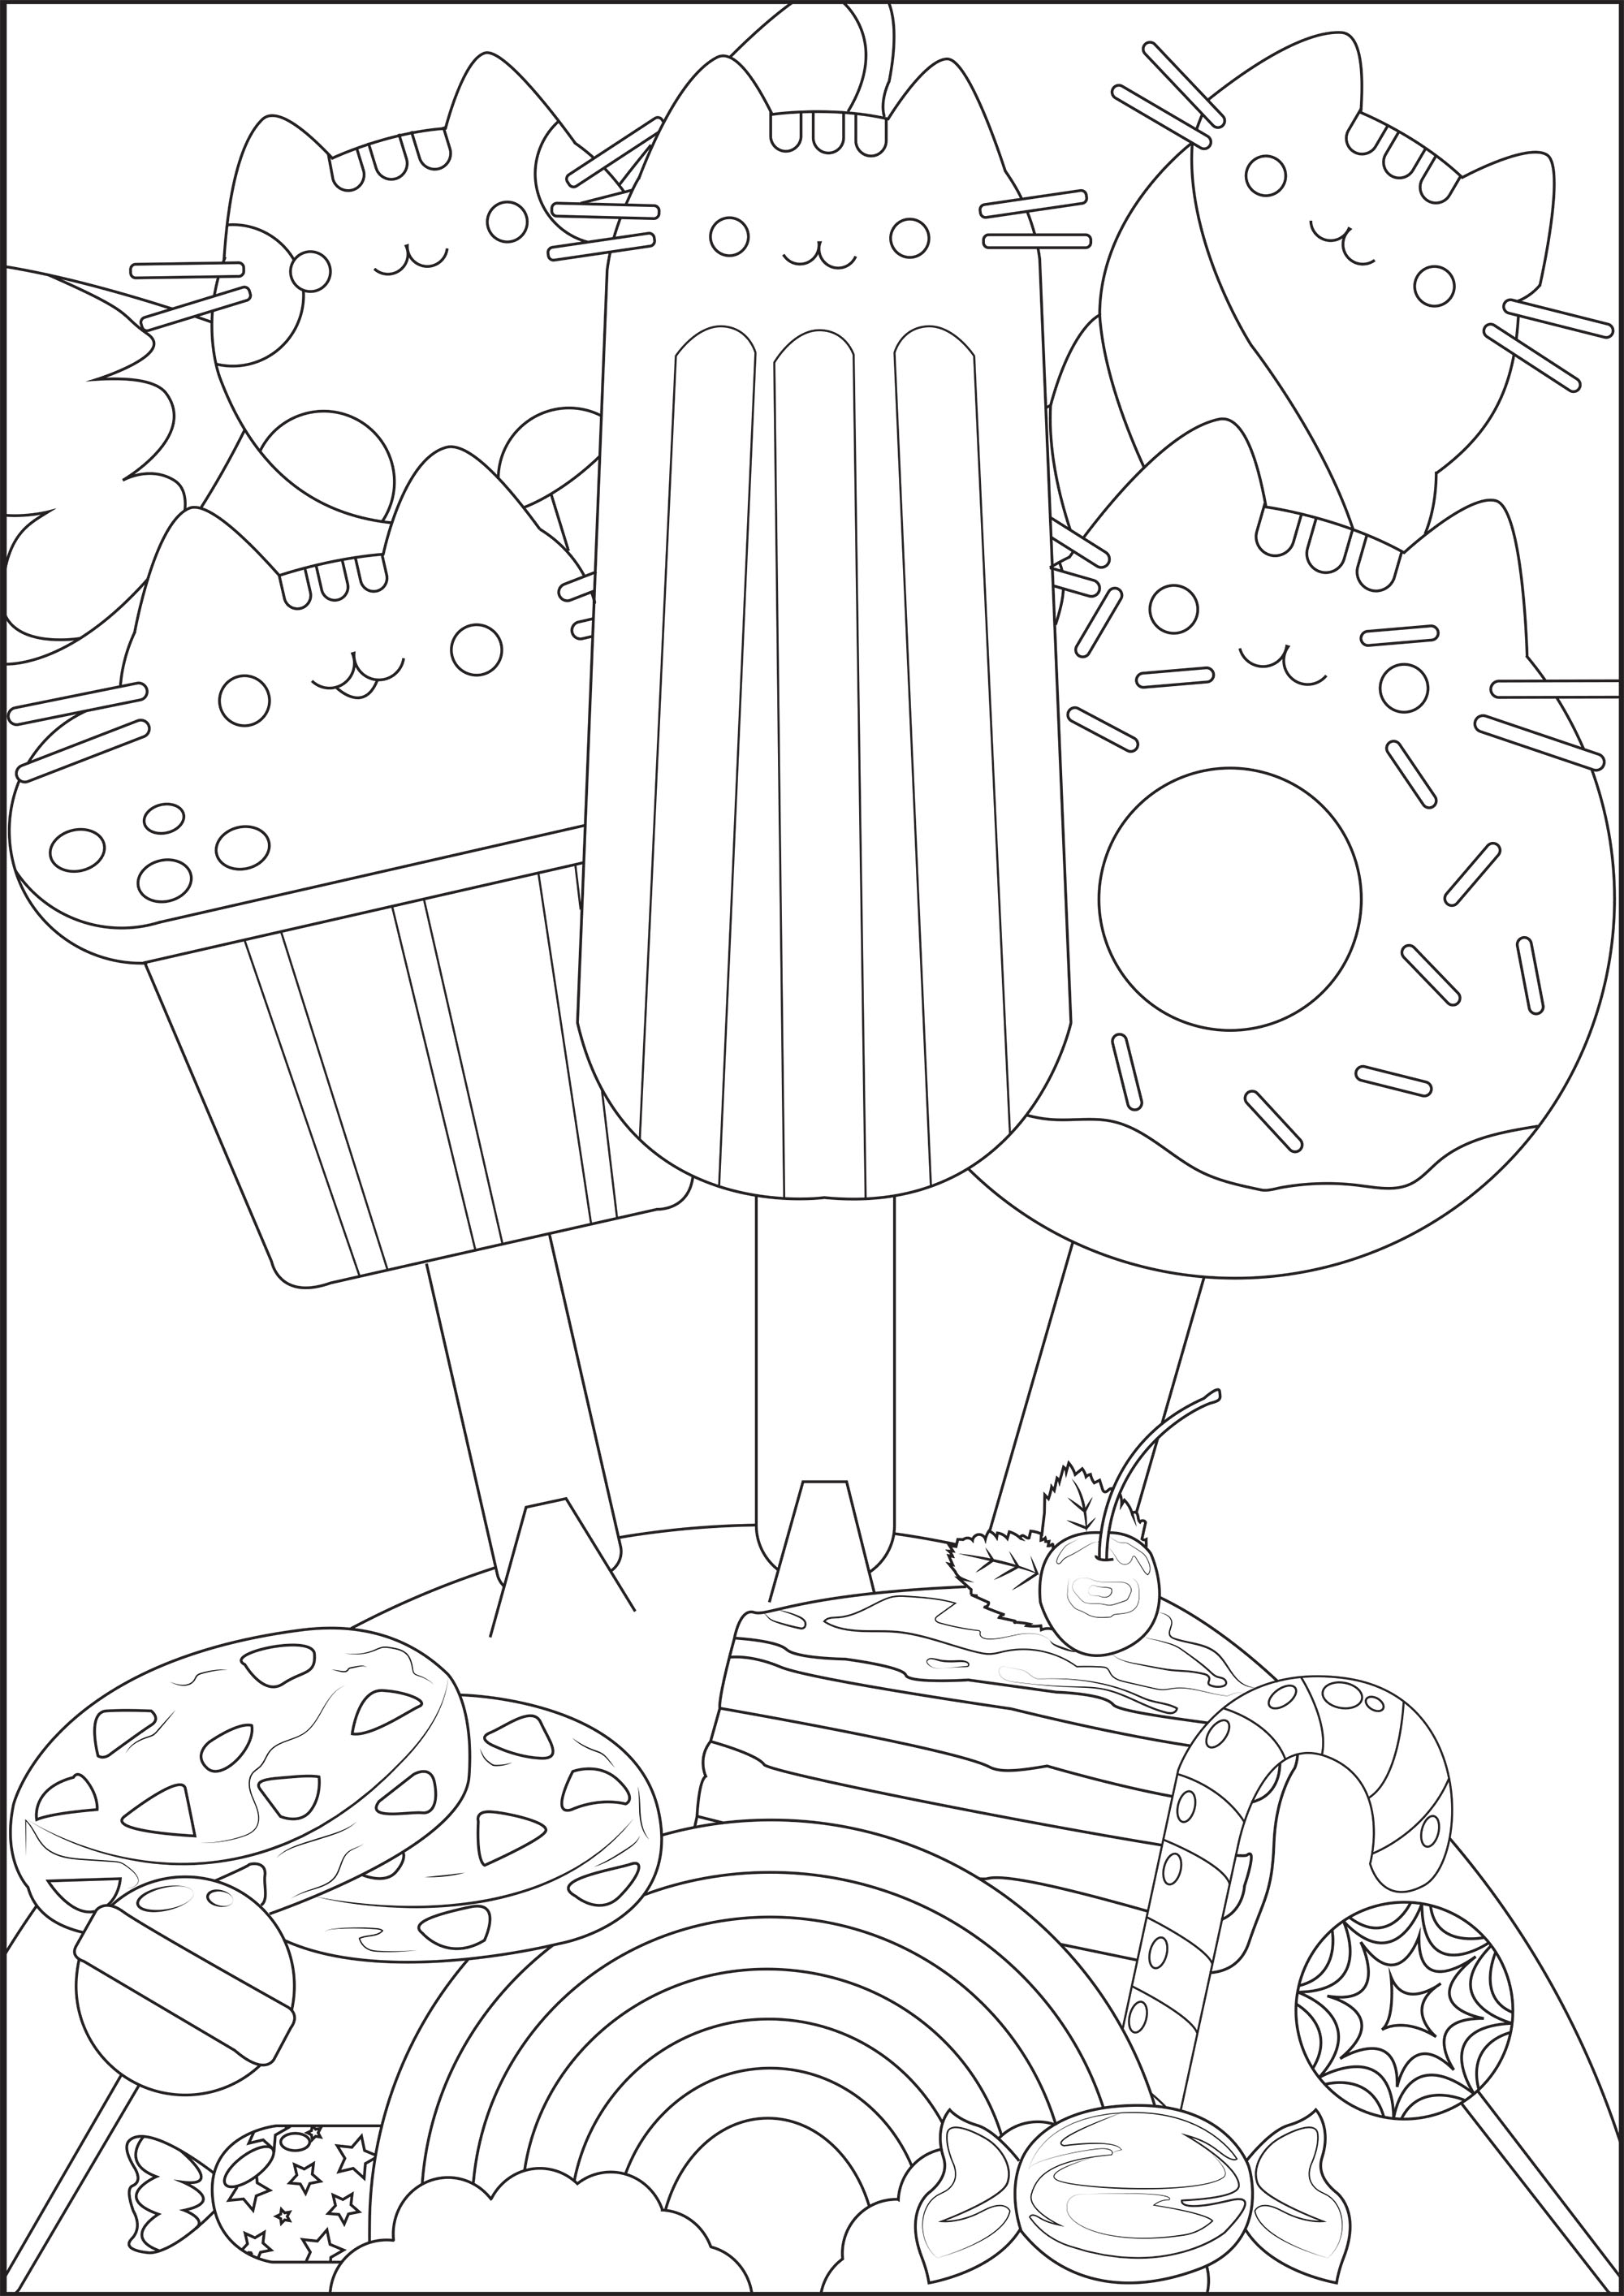 Coloriage Gateau Bonbon.Bouquet De Pusheen Sucre Doodles Coloriages Difficiles Pour Adultes